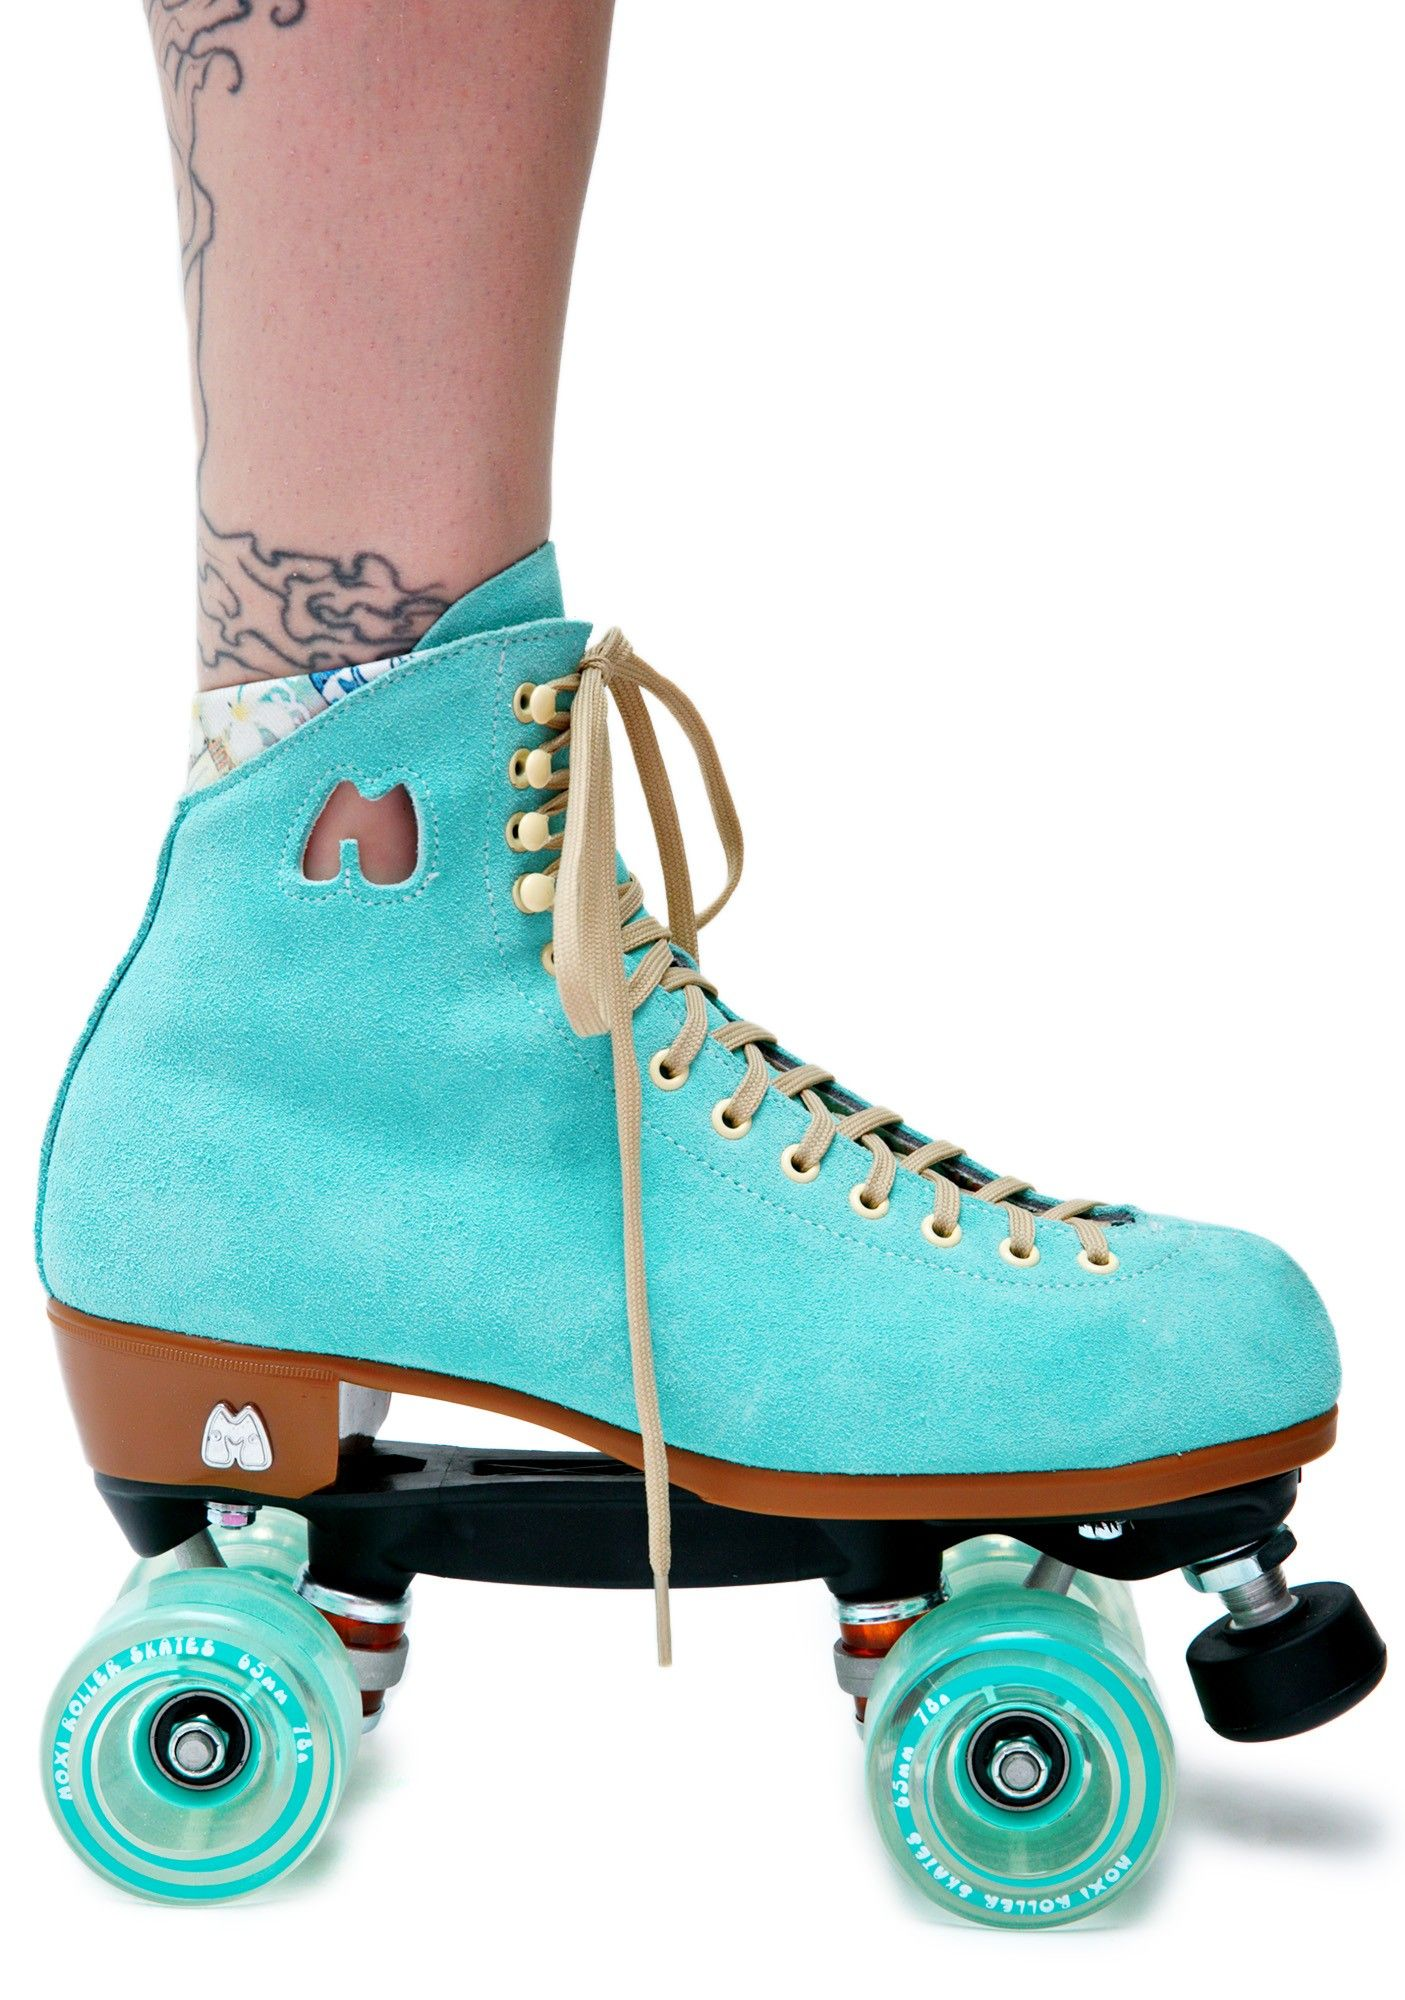 932d753270e Floss Lolly Roller Skates | Style: Legs & Shoes | Roller skating ...